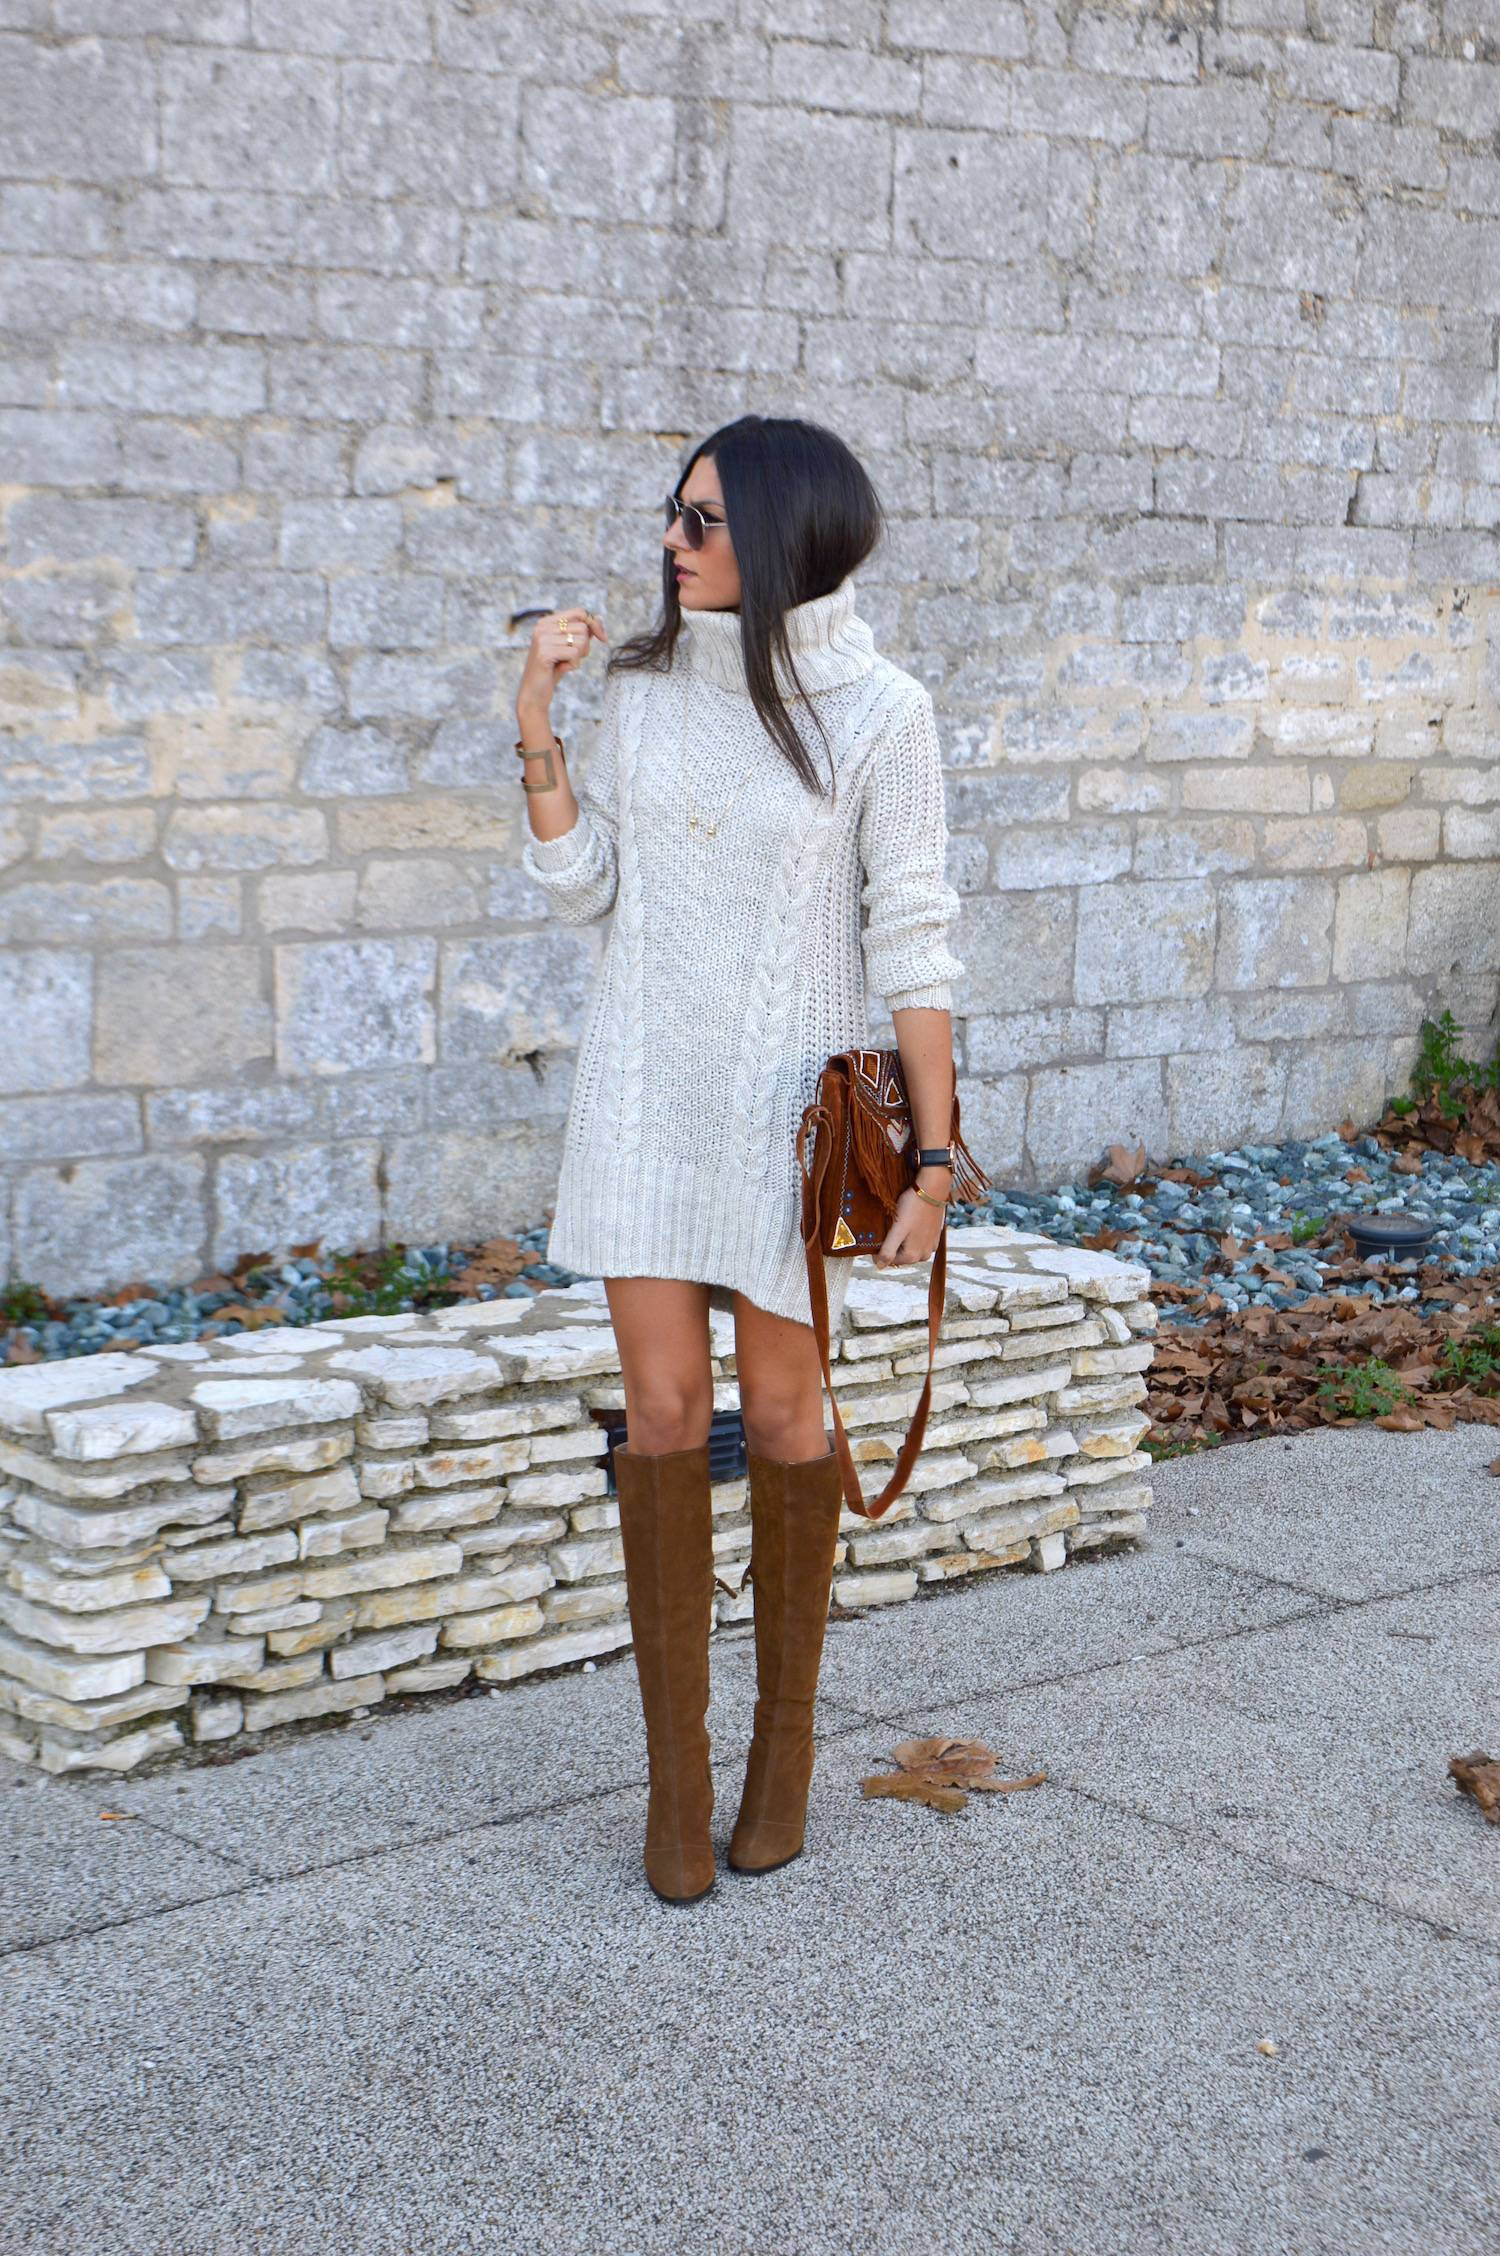 Turtleneck sweater dresses are always a winner. Wear a cream number with leather boots to simulate Federica L.'s look. Sweater Dress: H & M, Boots: Zara, Bag: Amenapih, Watch: Daniel Wellington, Collier: And Other Stories.